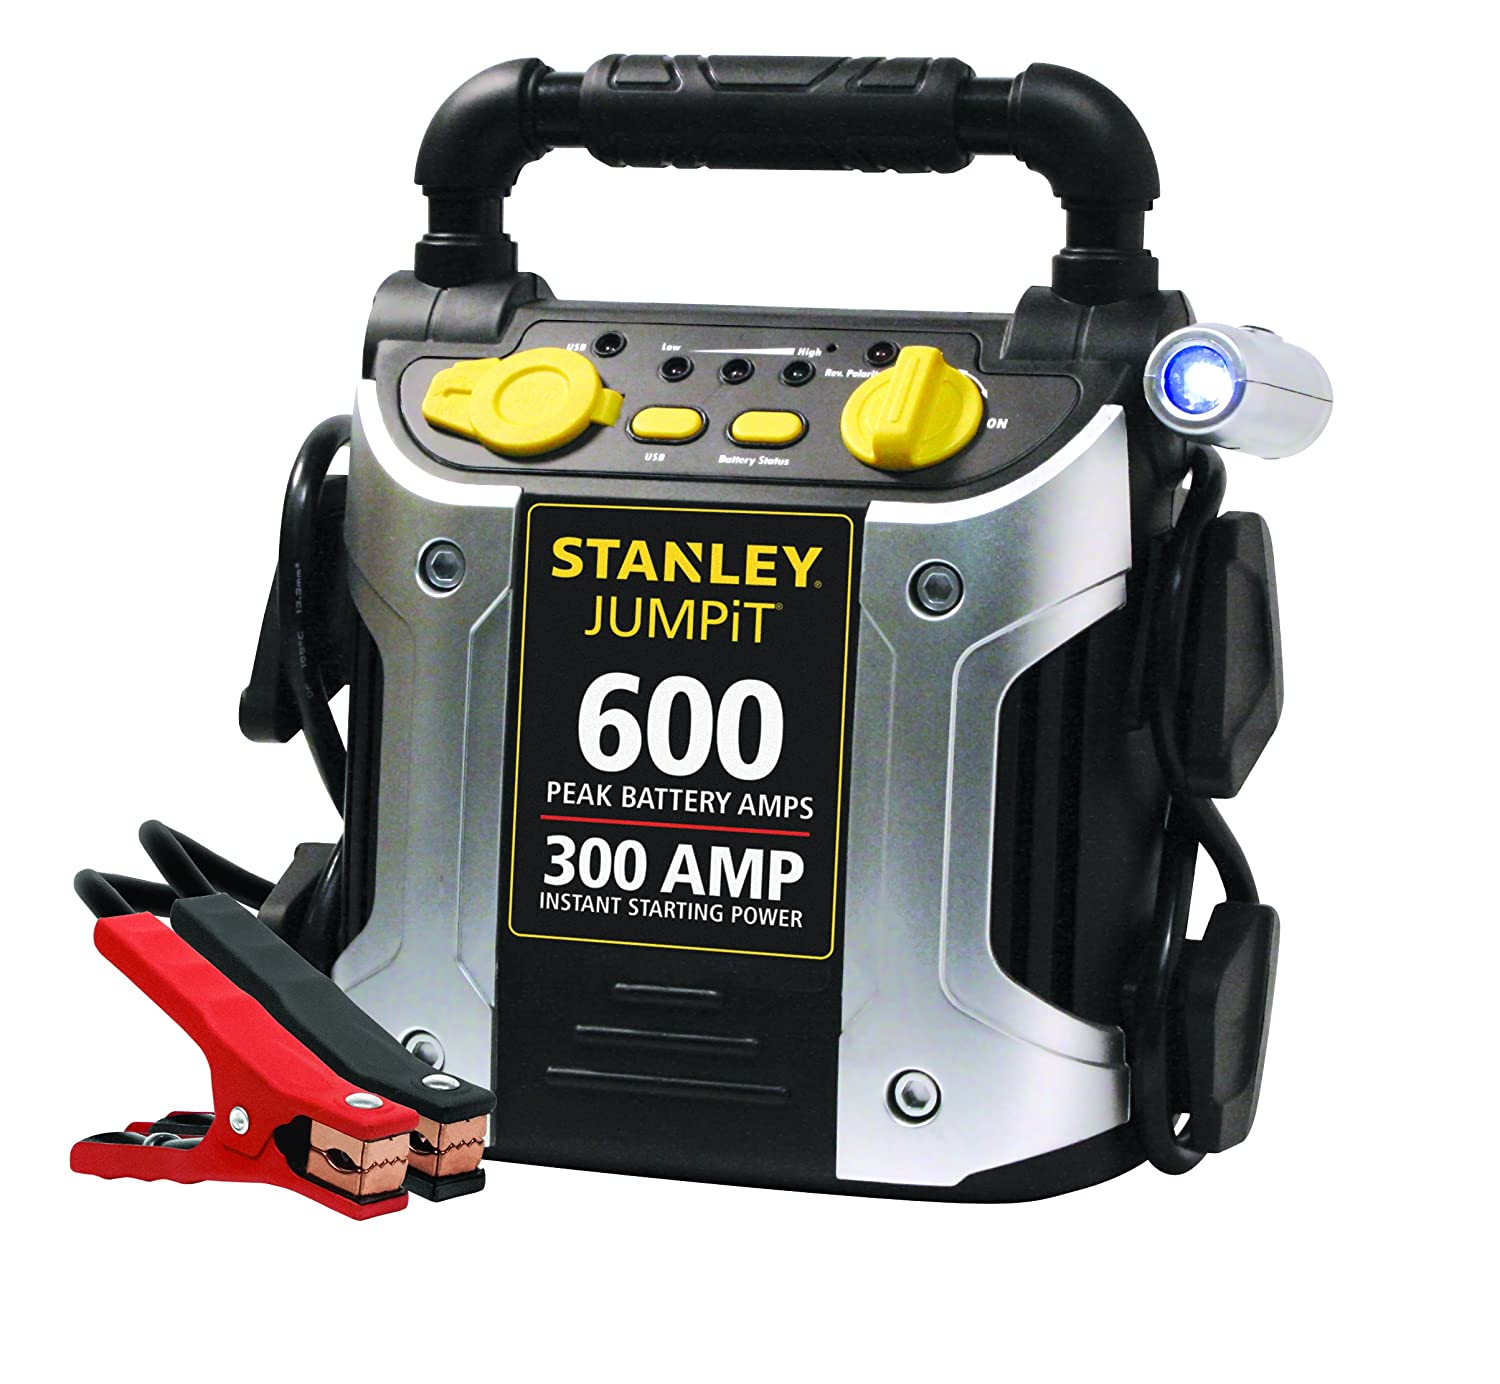 Stanley 300 Amp Jump Starter, 600 Peak Amps of Power, Built-in 120V AC Charger, LED Emergency Light, Reverse Connection Warning,